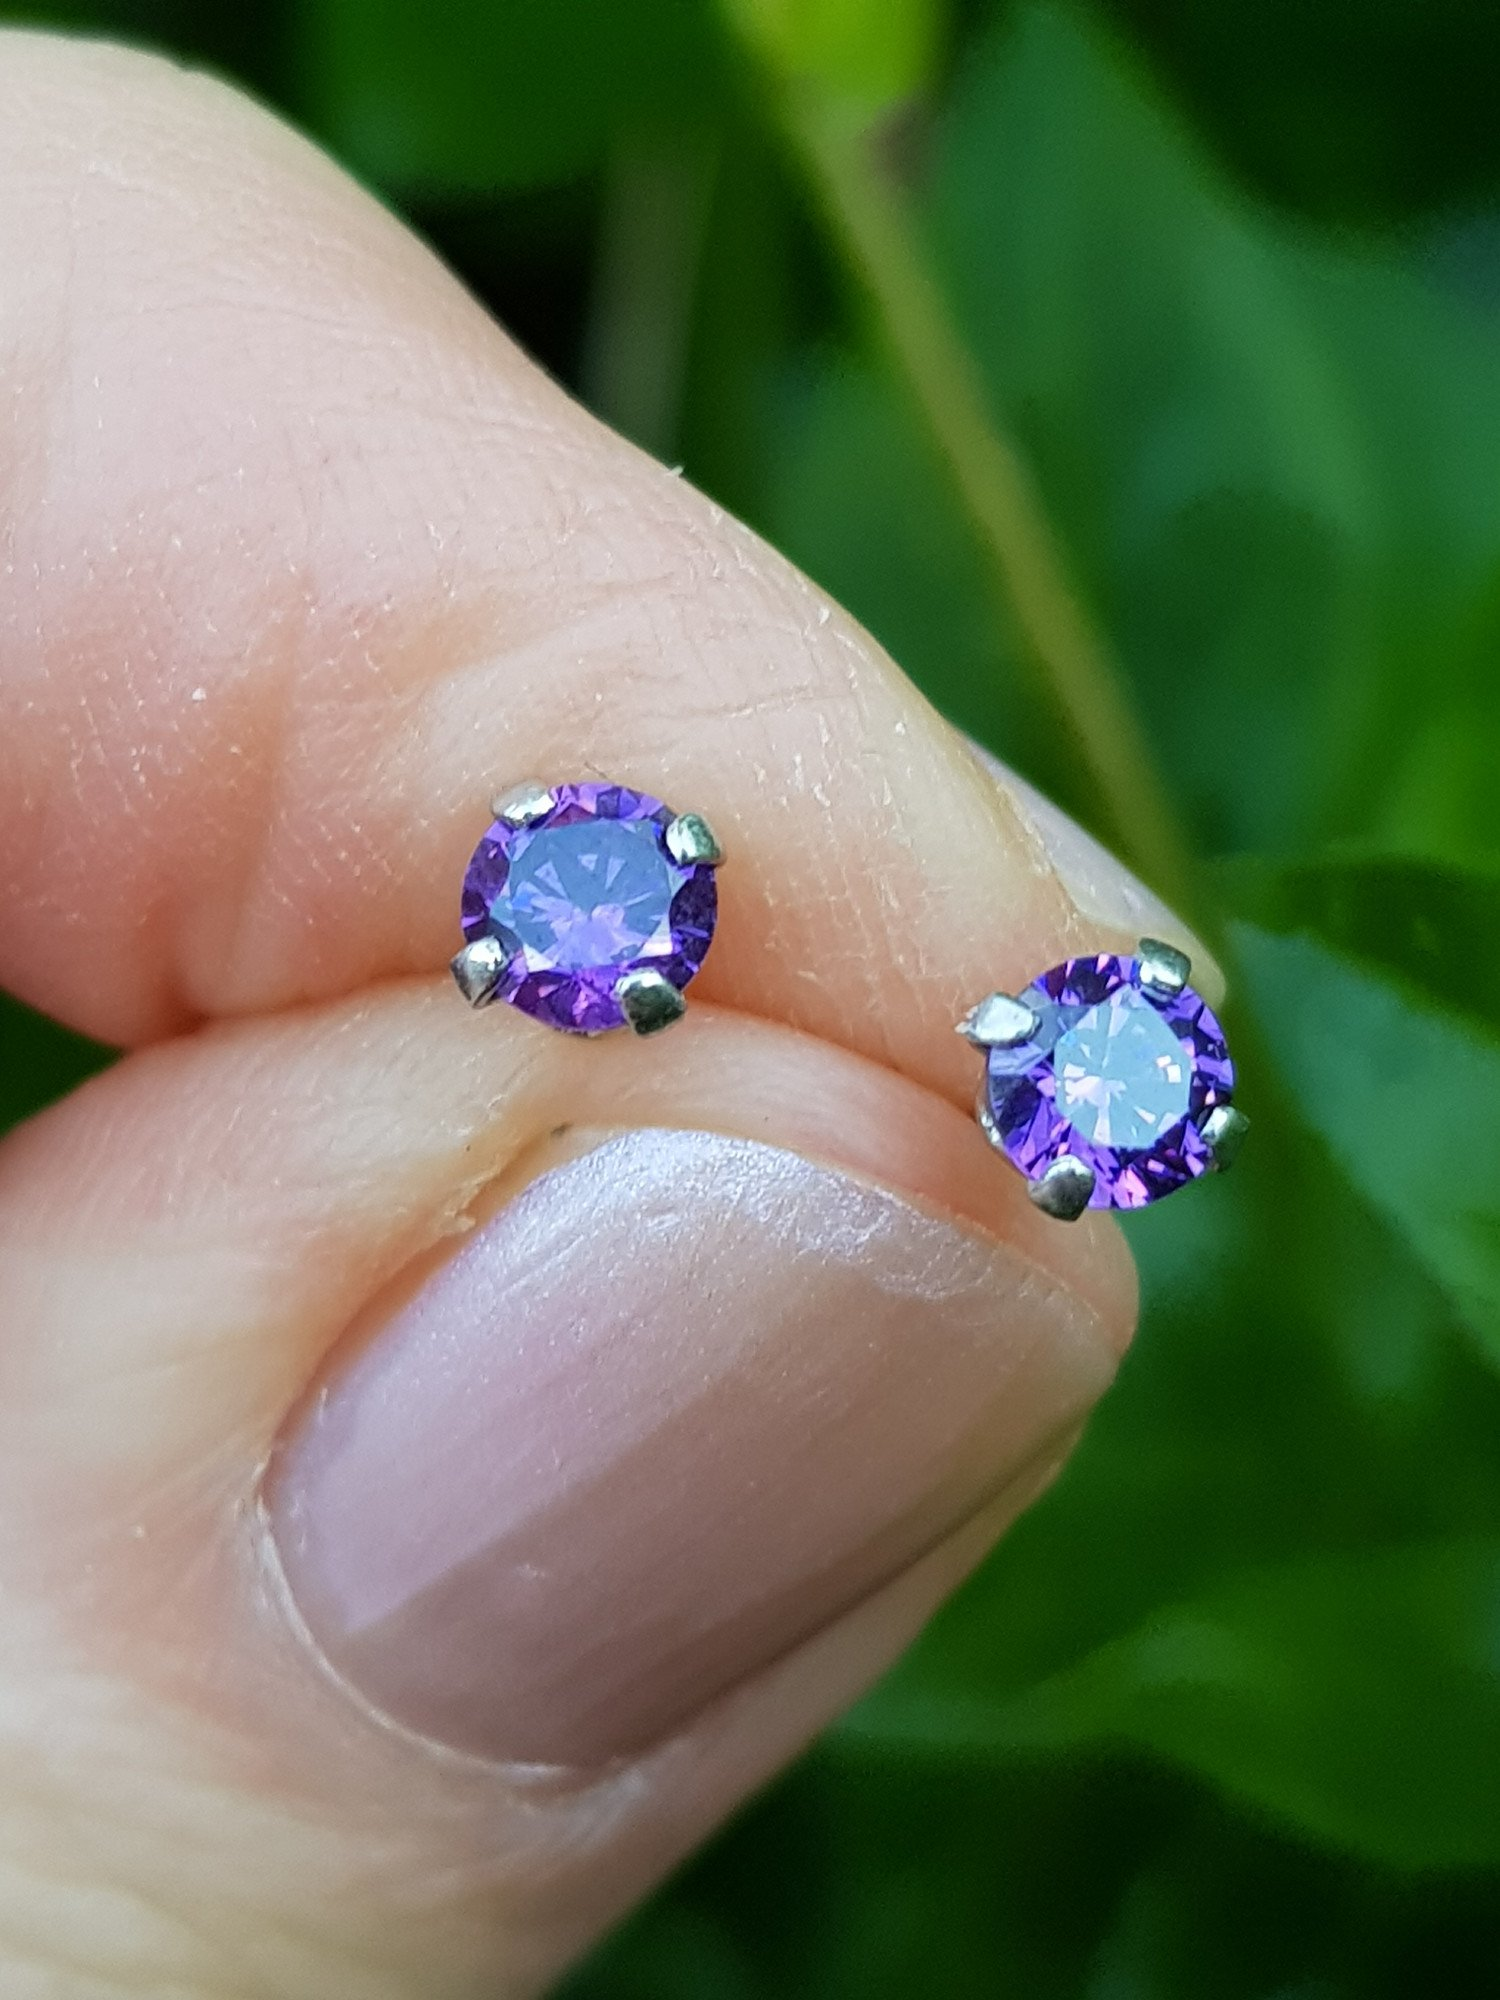 Silver, Cubic Zirconia Amethyst Round Stud Earrings - ONLY £7.00 - FREE UK delivery